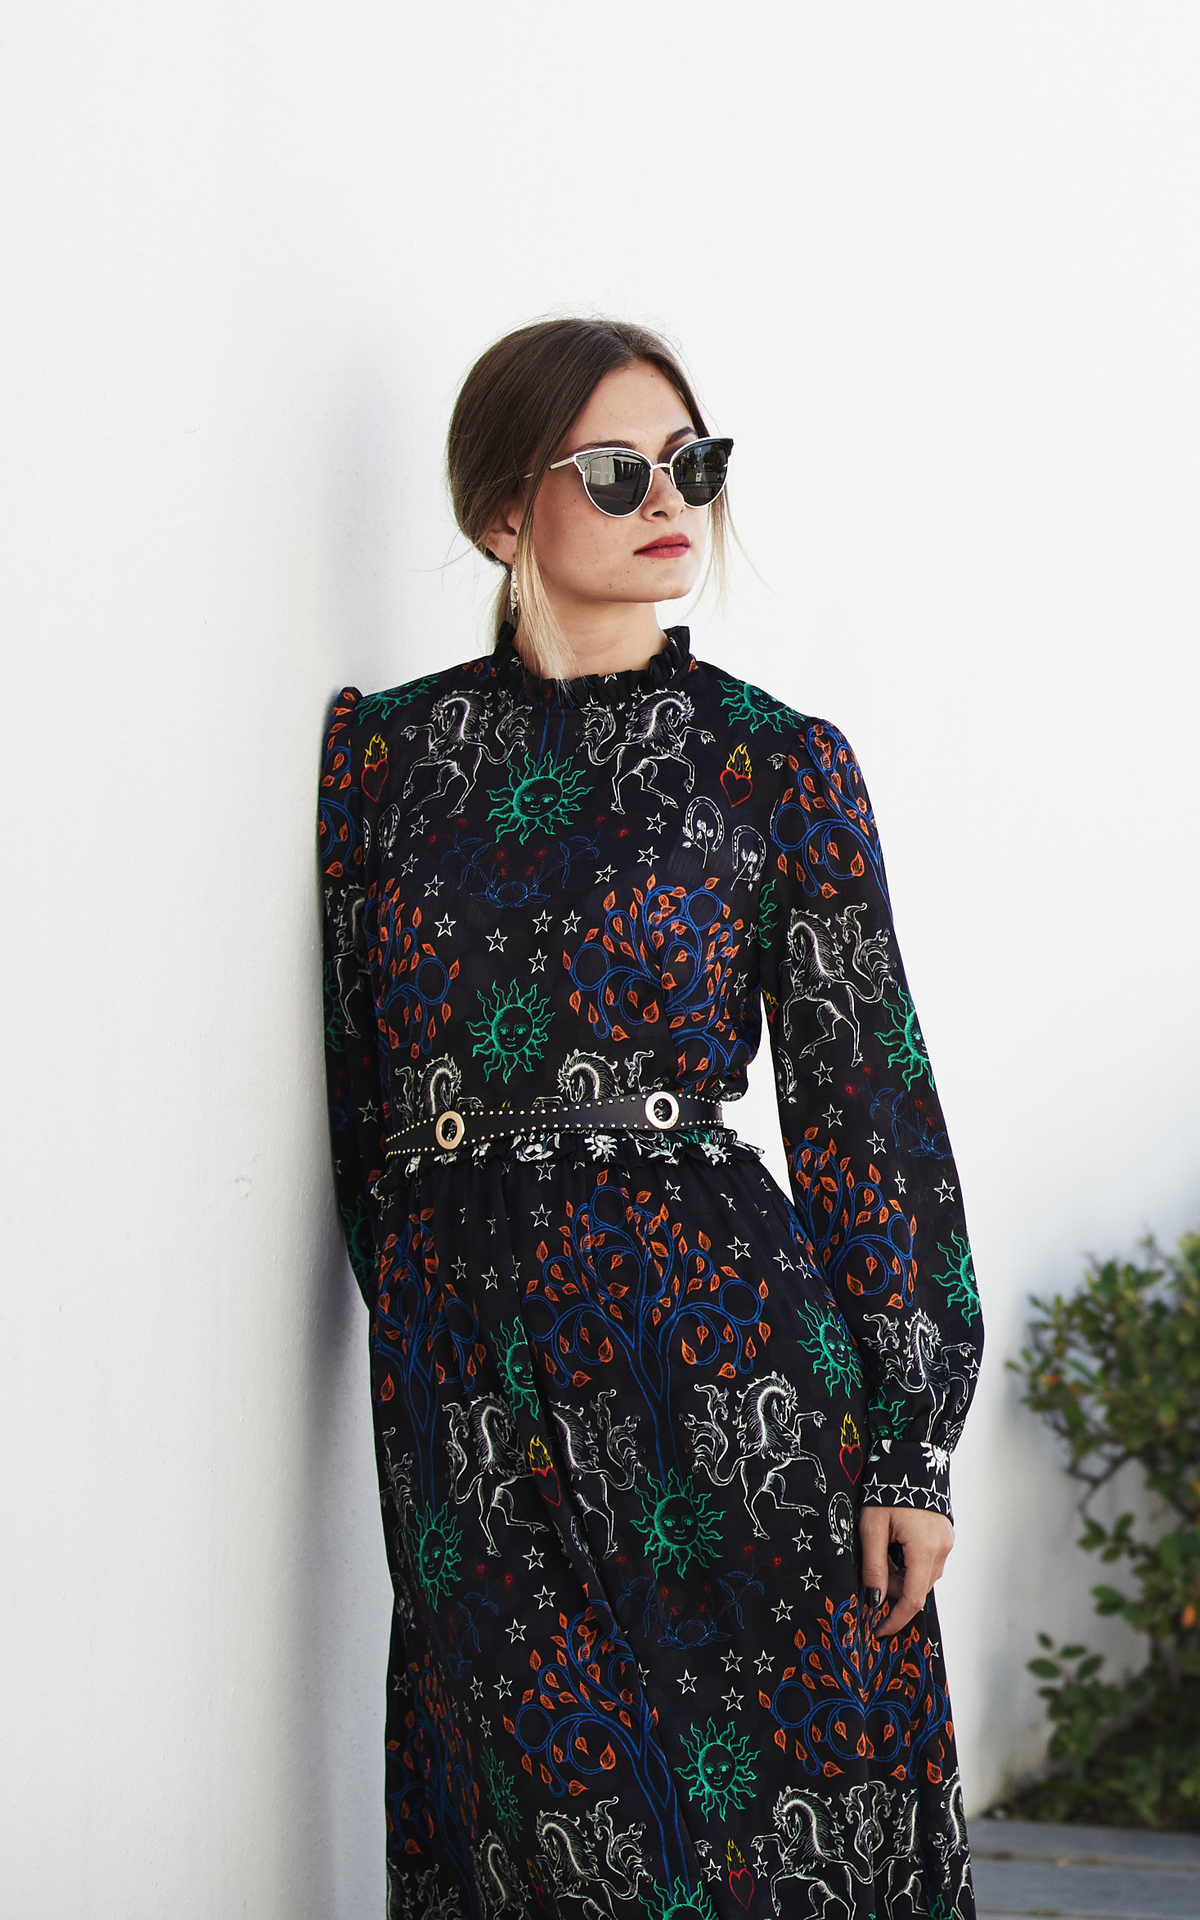 Woman leaning on the wall with sunglasses and a printed dress